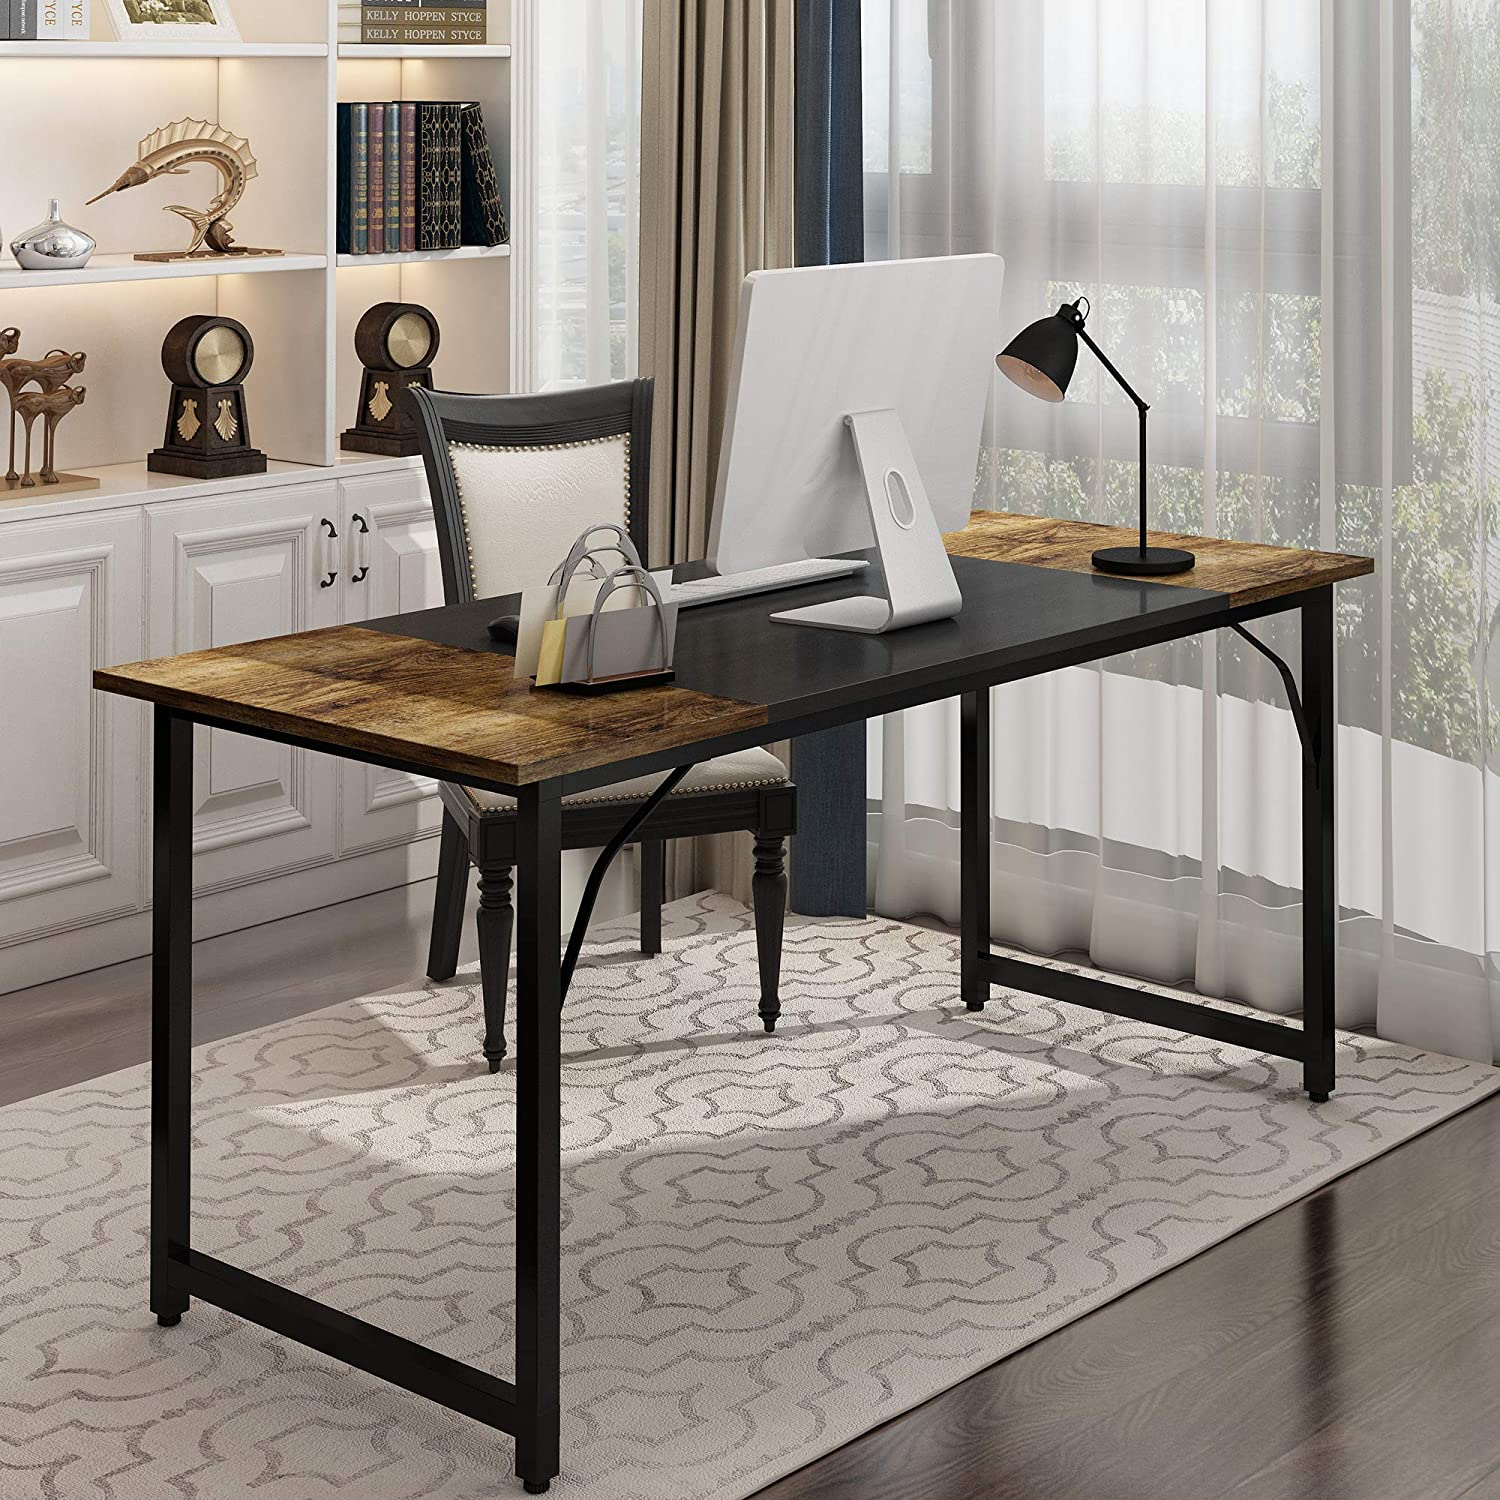 Home Office Computer Desk Writing New York Mall Workstation Bombing free shipping PC Black Met